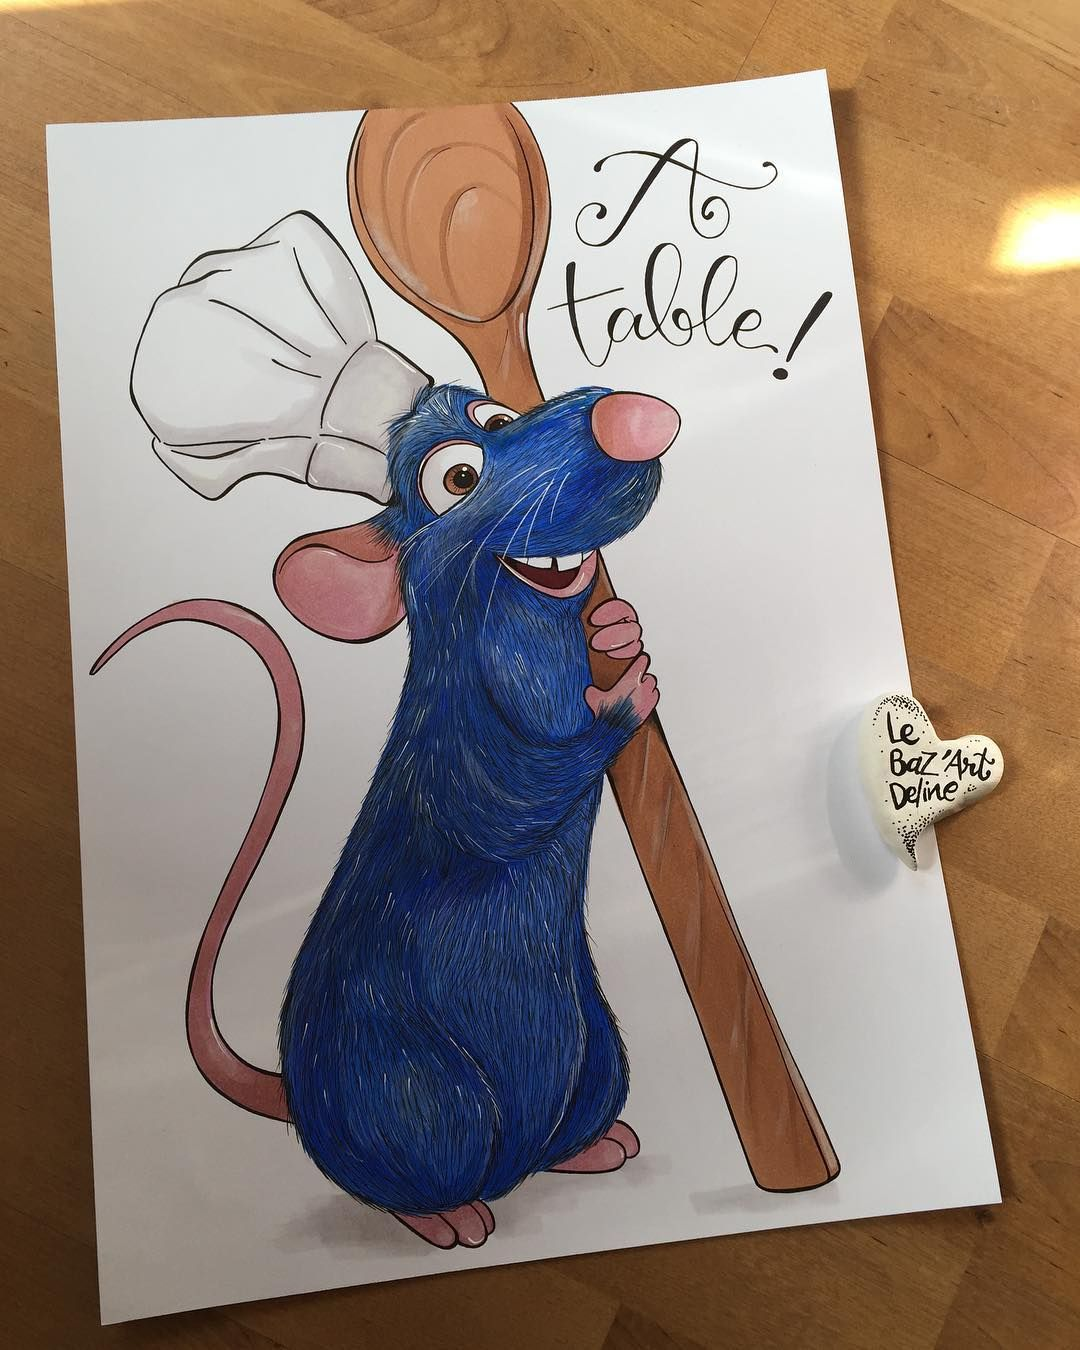 Ratatouille Rat Remy Disneylandparis Disney Disneyland Disneyworld Disneylife Dessin Ratatou Disney Art Drawings Disney Paintings Ratatouille Disney